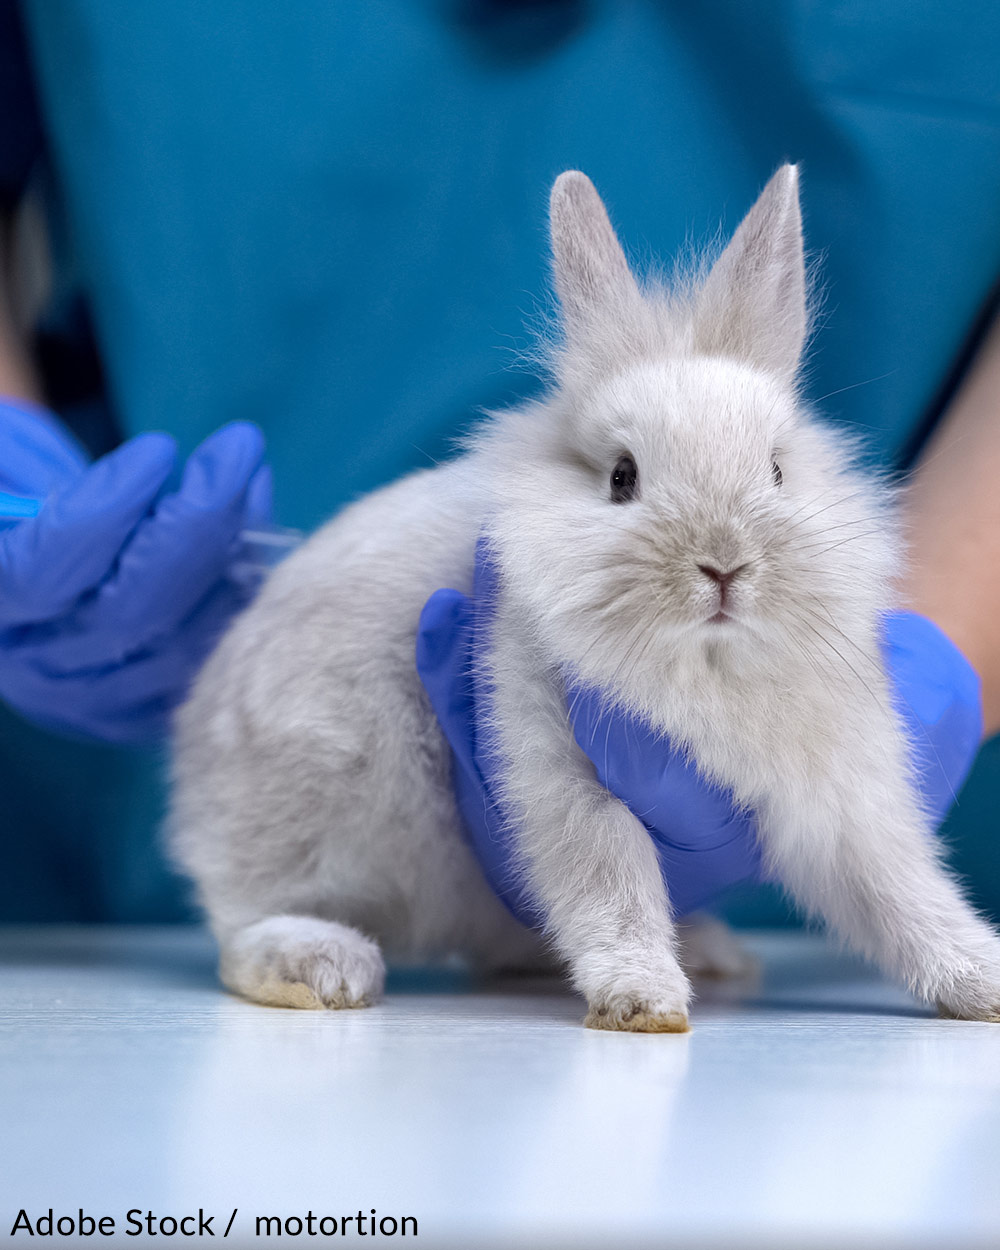 Help us end animal testing in the cosmetics industry.